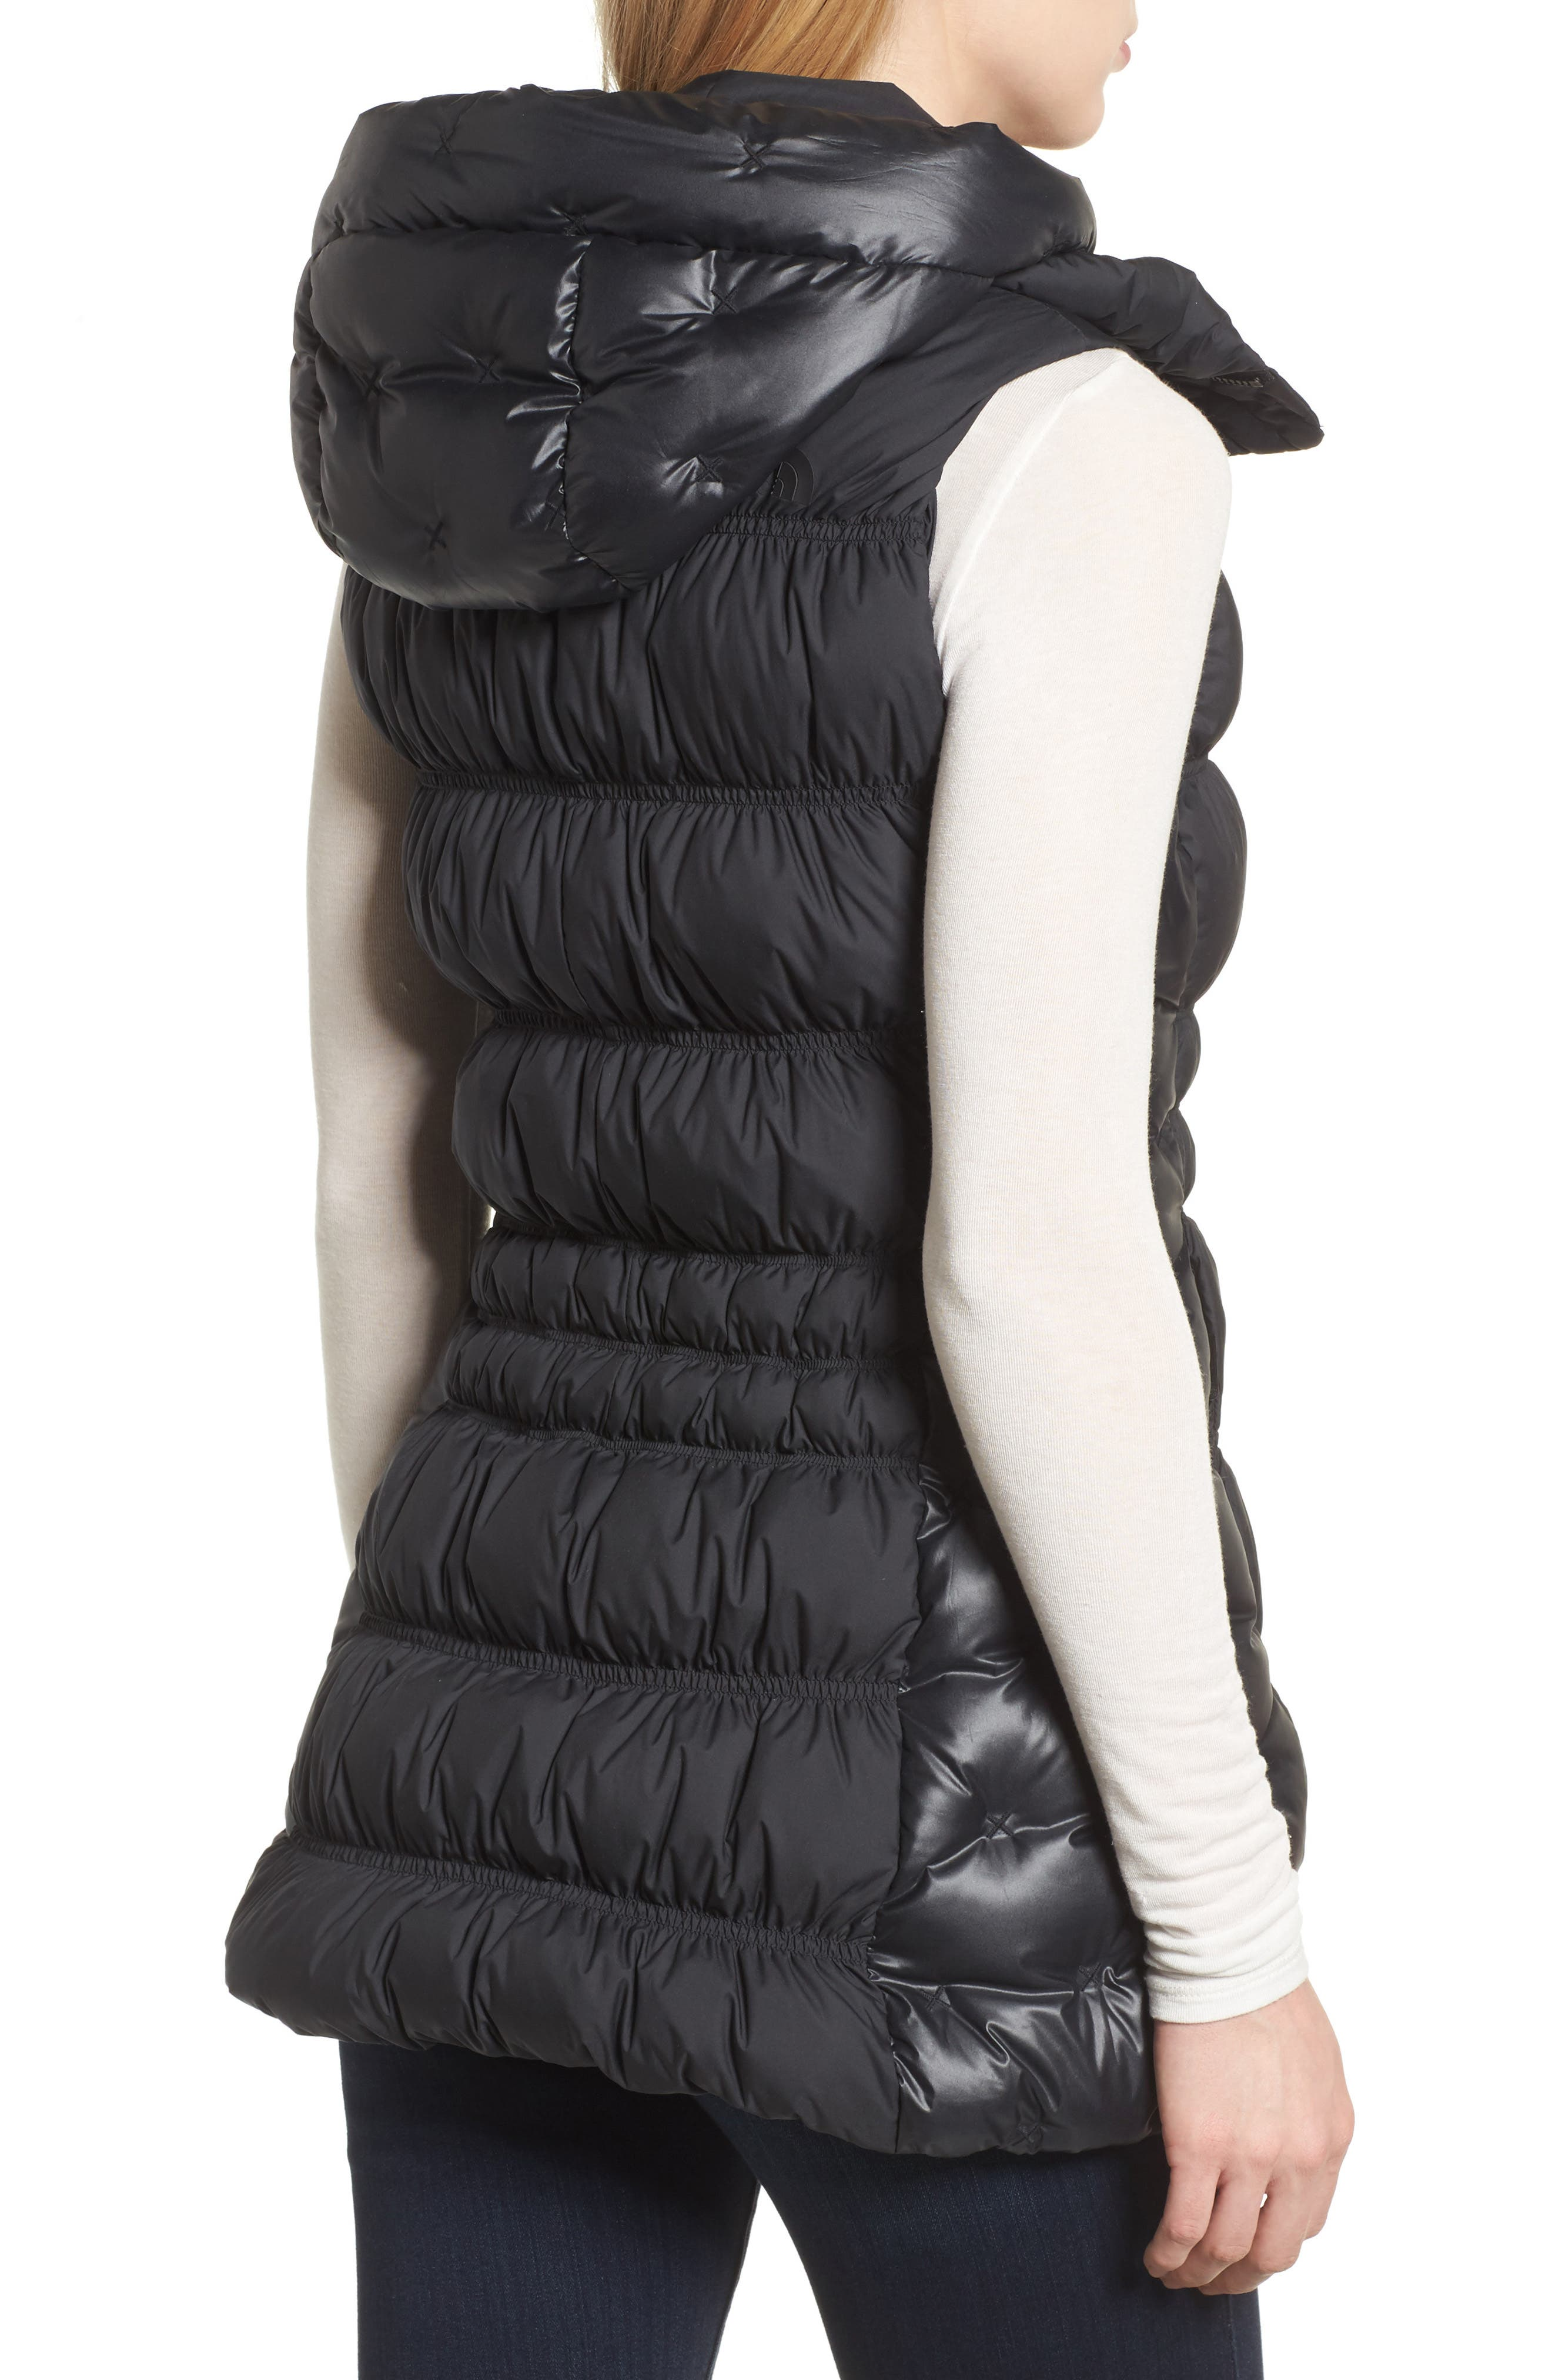 Cryos 800-Fill-Power Down Vest,                             Alternate thumbnail 3, color,